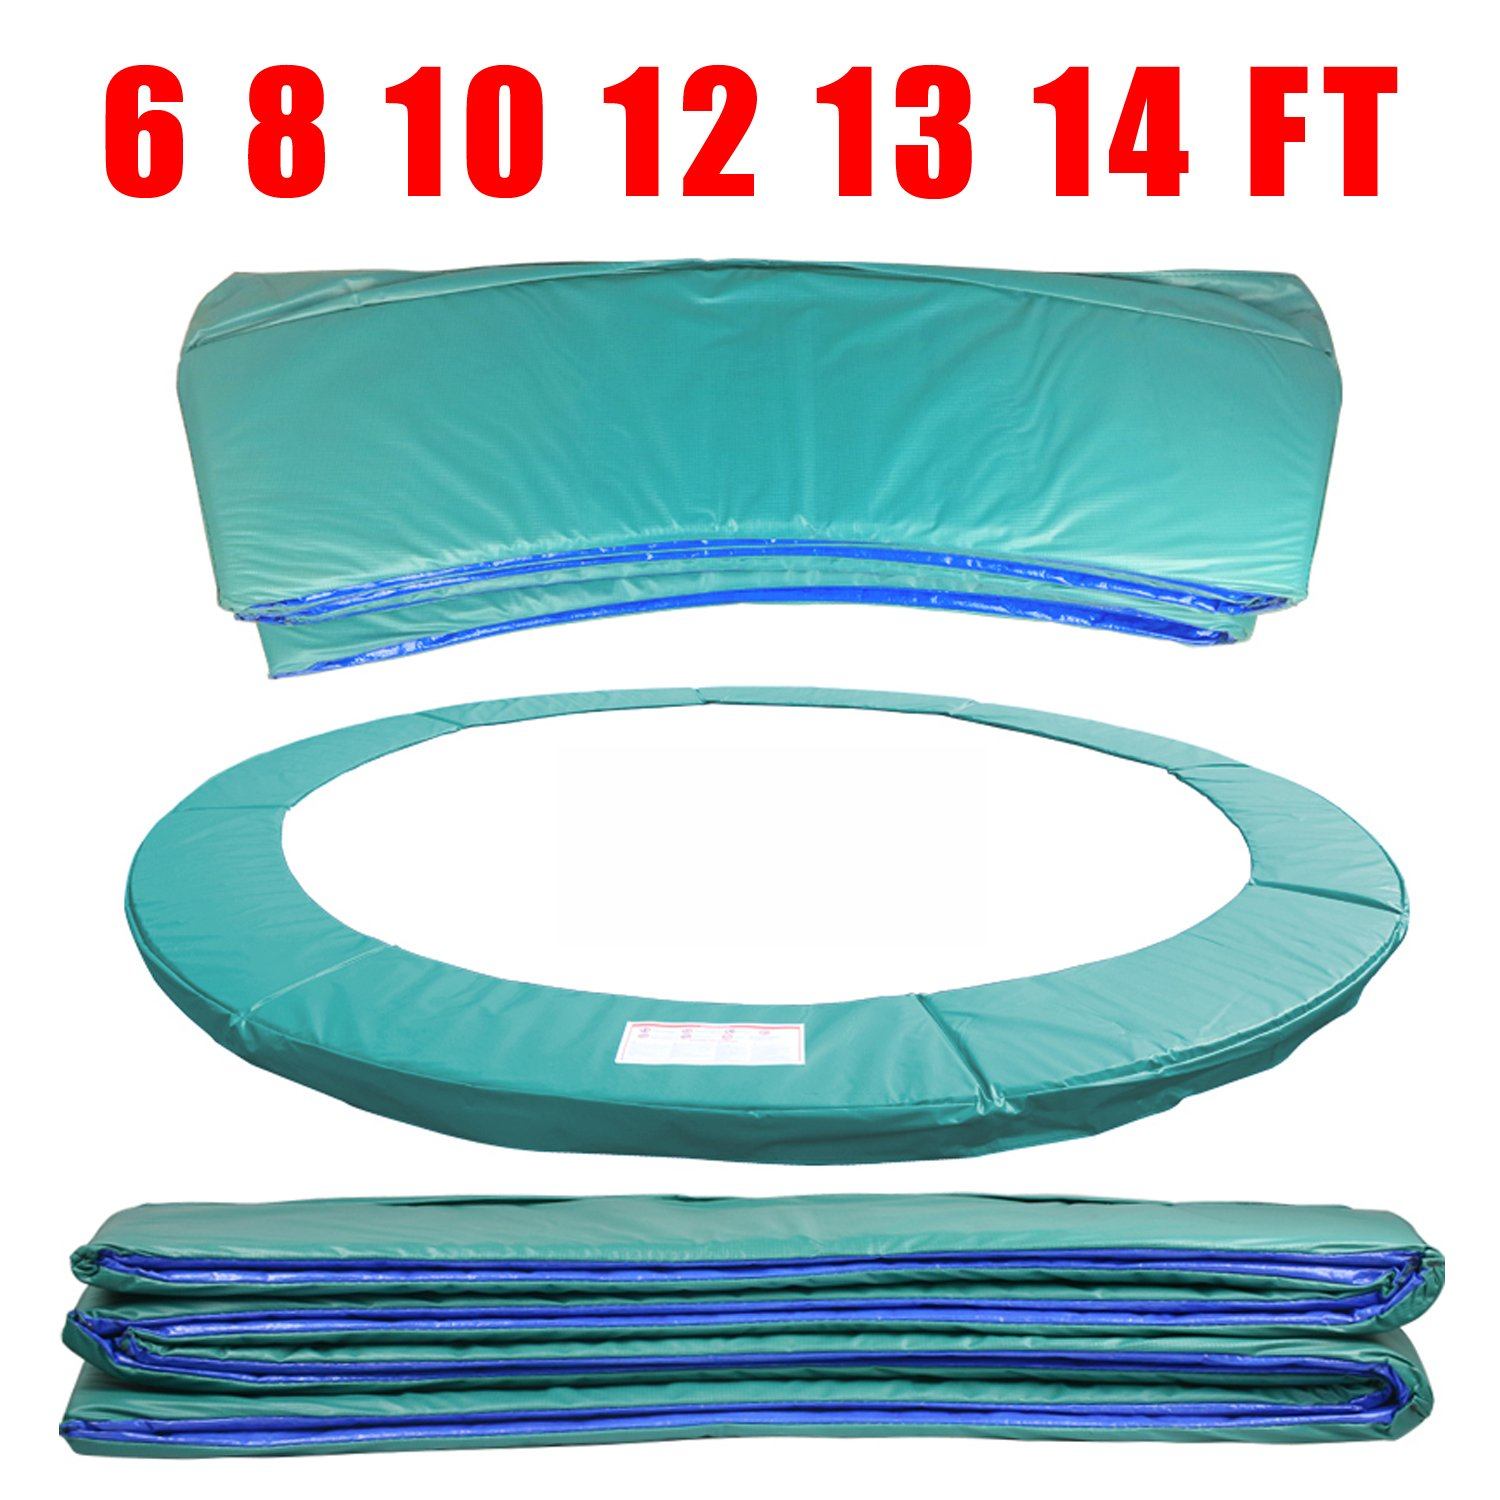 Greenbay 6FT Trampoline Replacement Pad Safety Spring Cover Padding Surround Pads